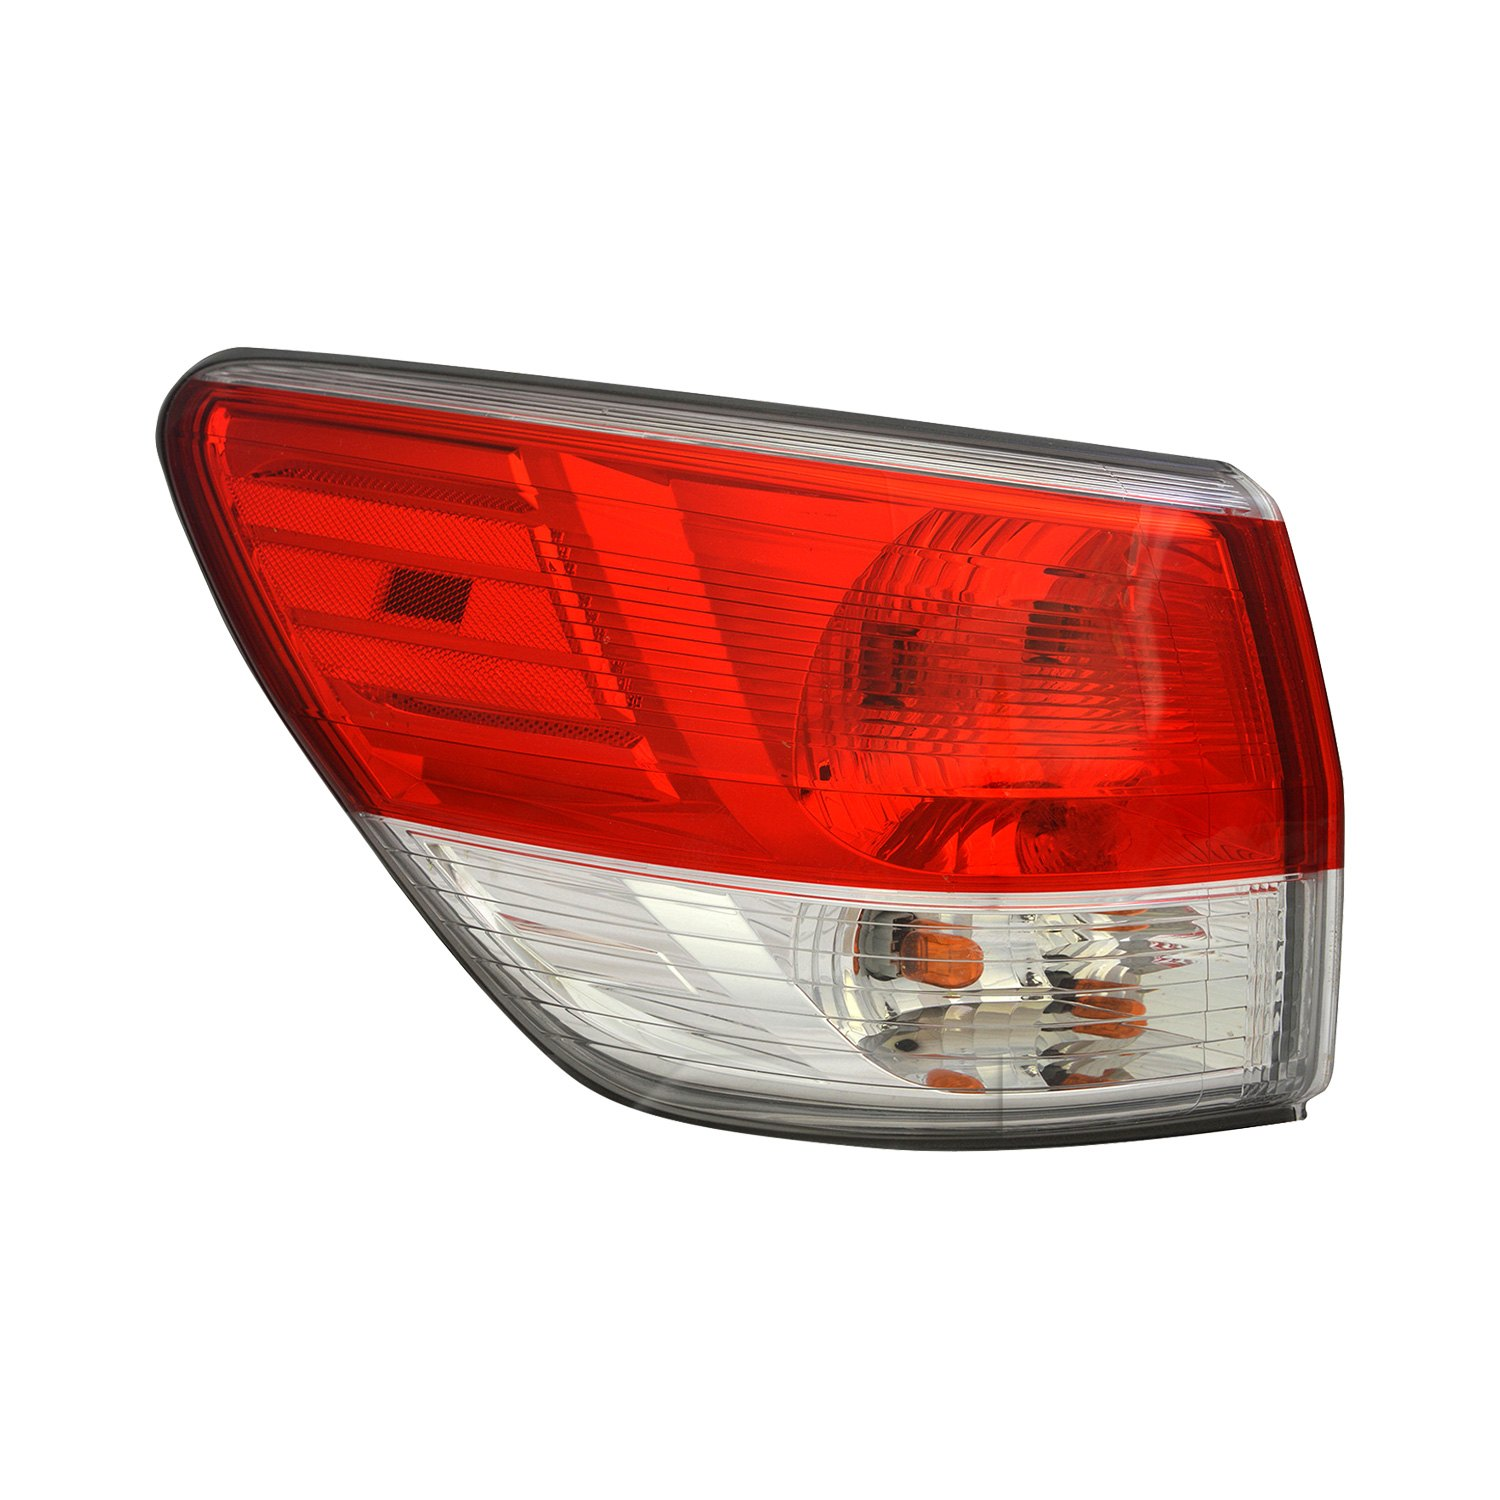 TYC 11 6568 00 1 Driver Side Outer NSF Certified Replacement Tail Light